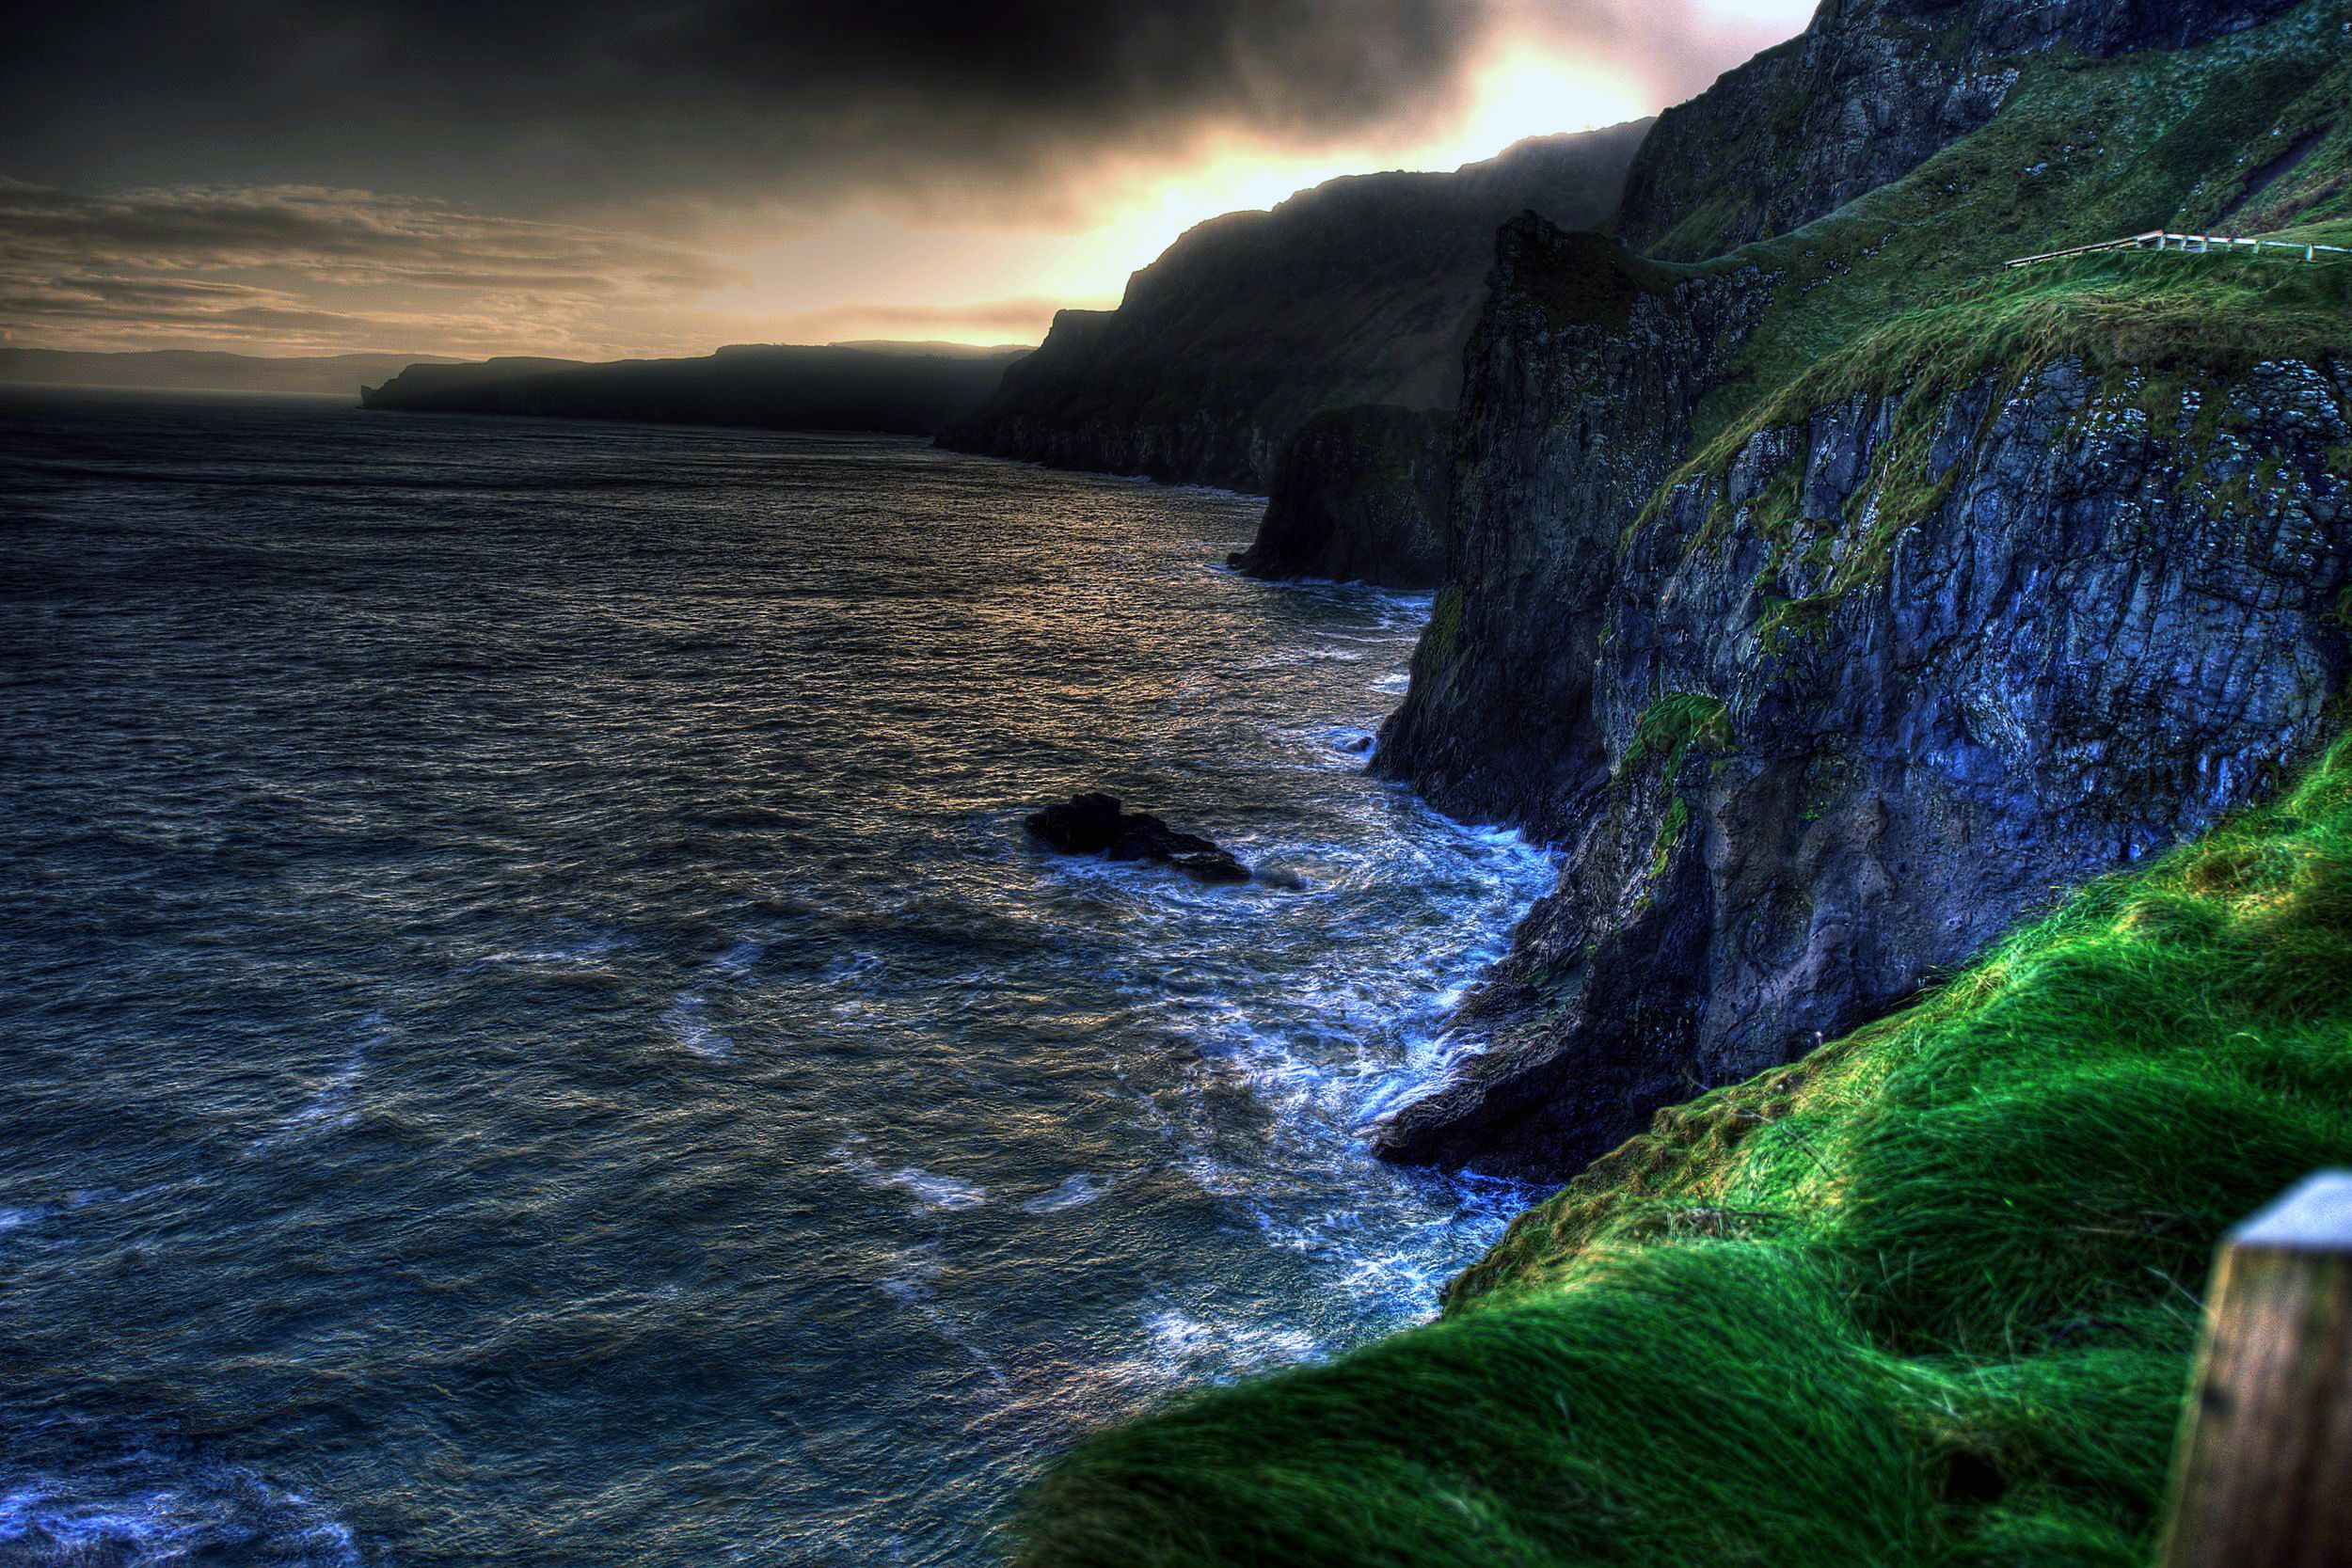 The wallpaper of amazing coastline of Ballintoy in